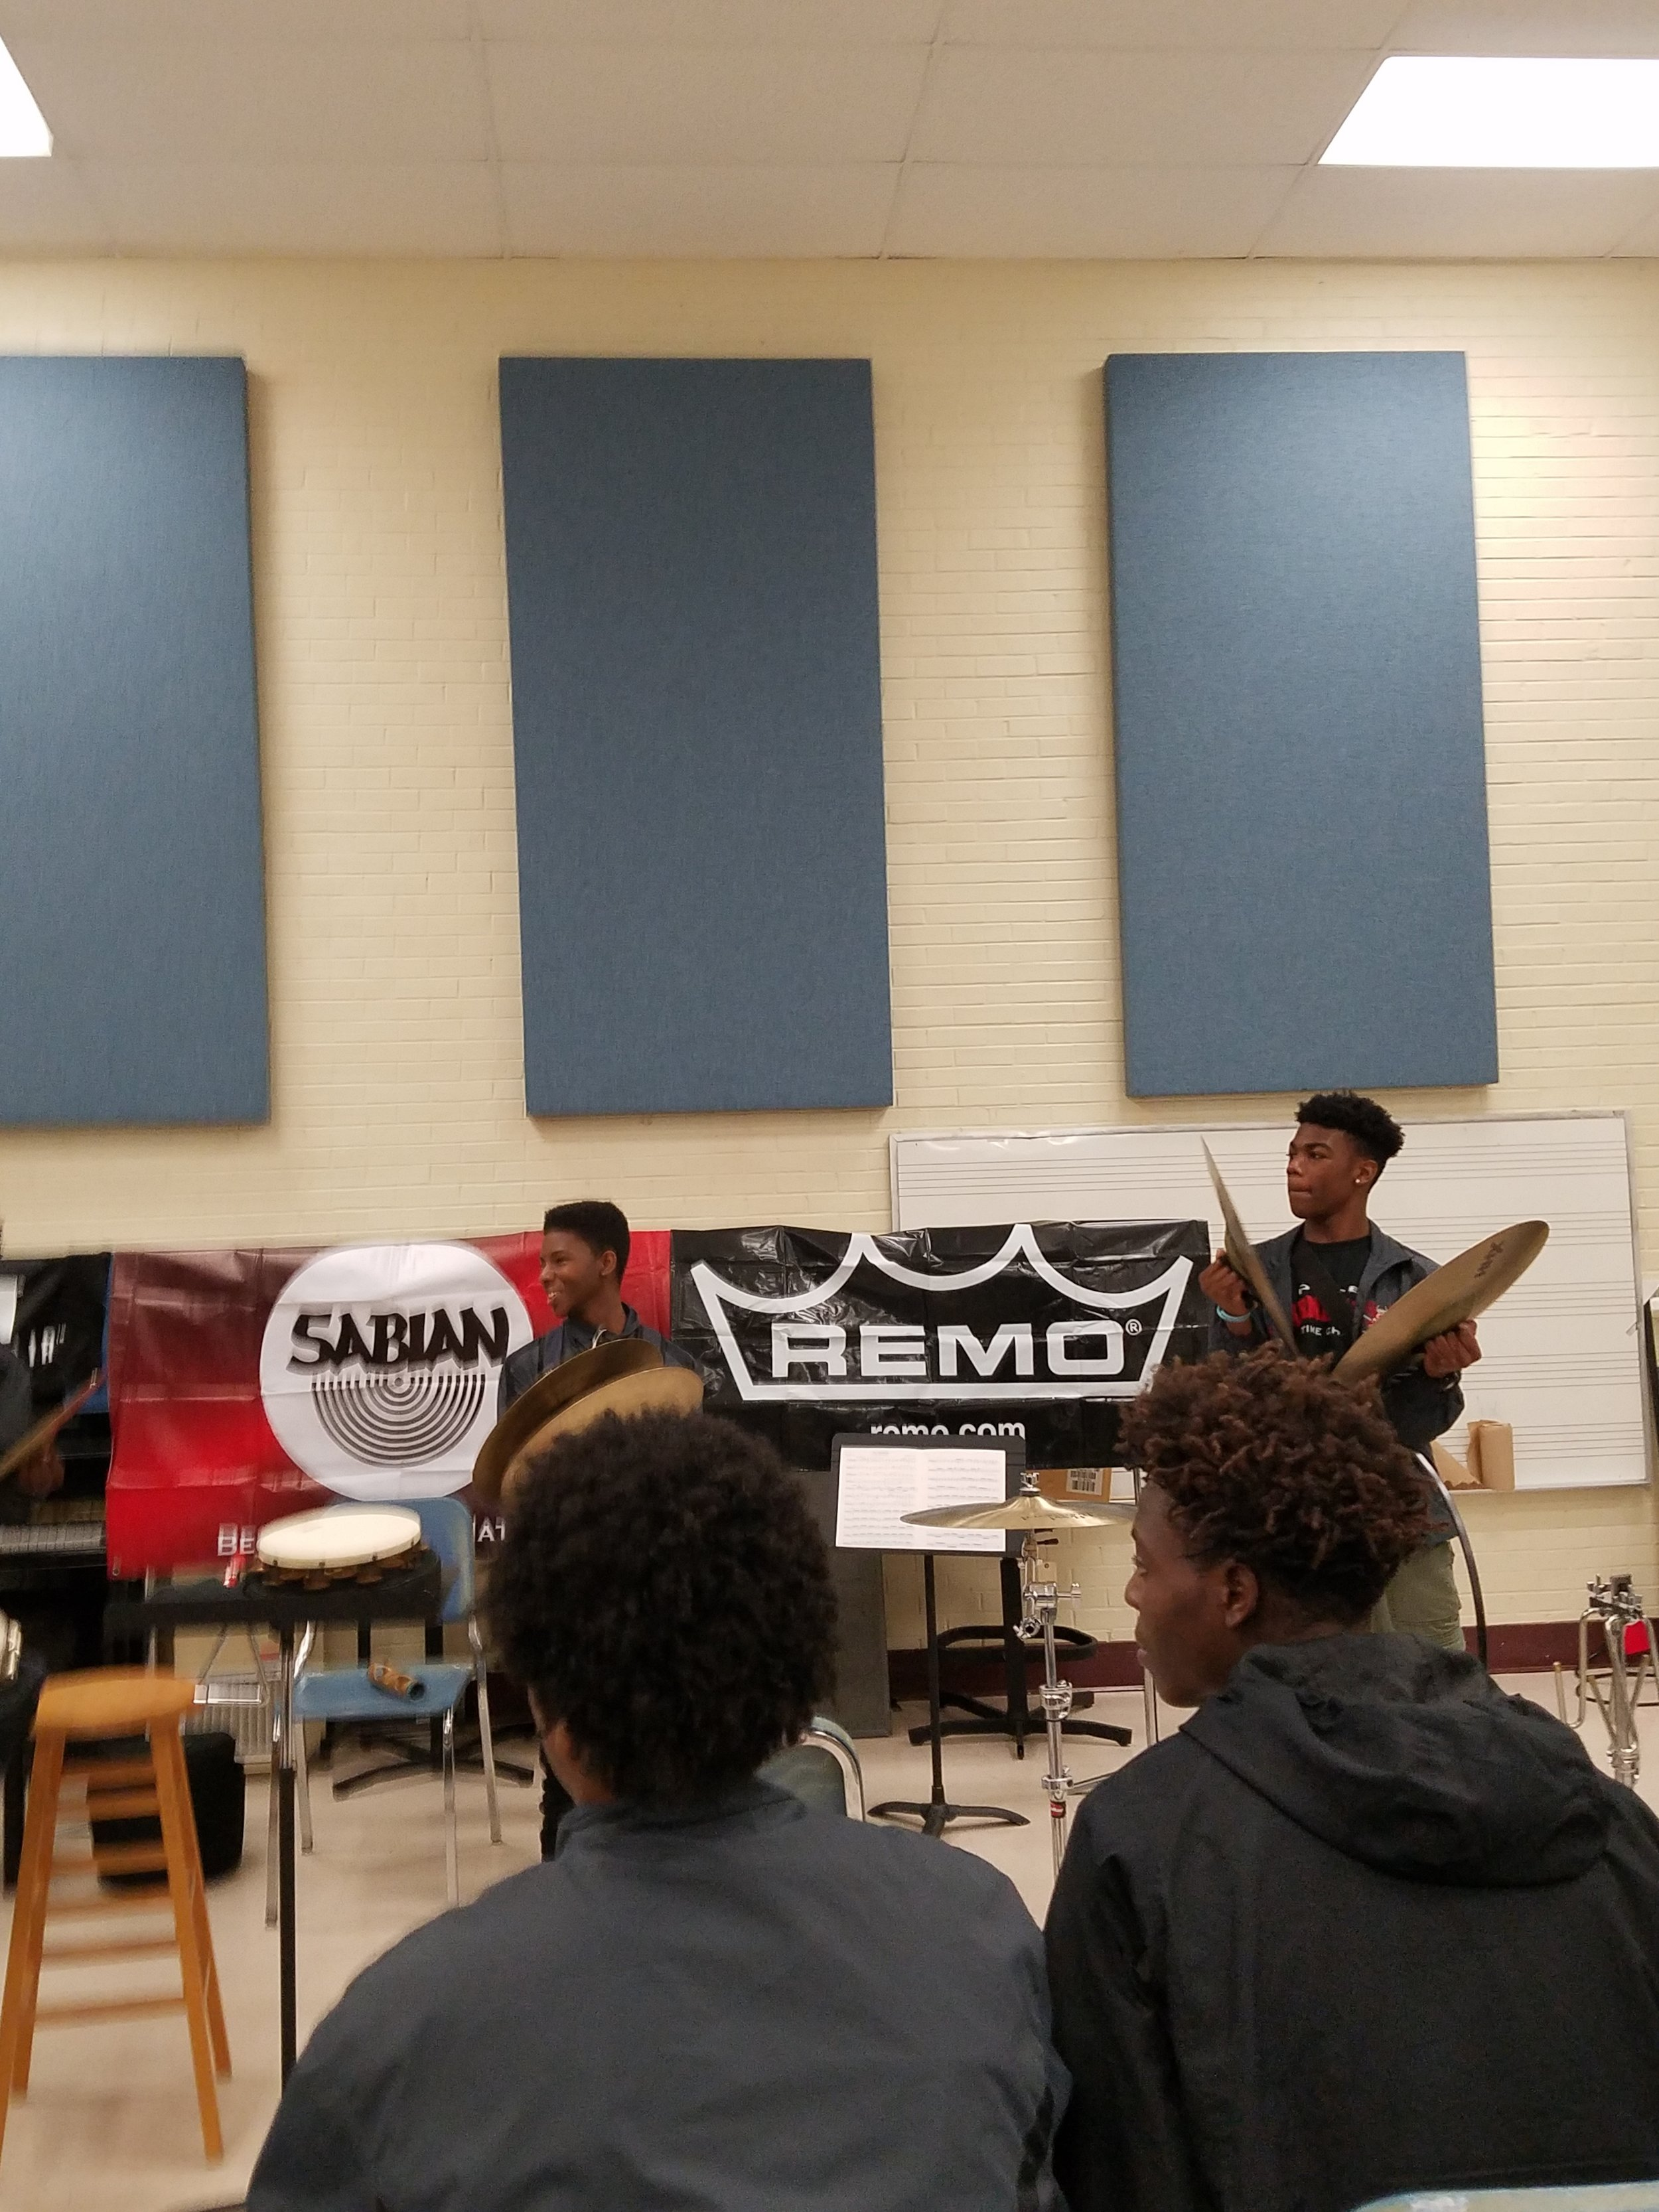 Hoke County High School learning about crash cymbal techniques